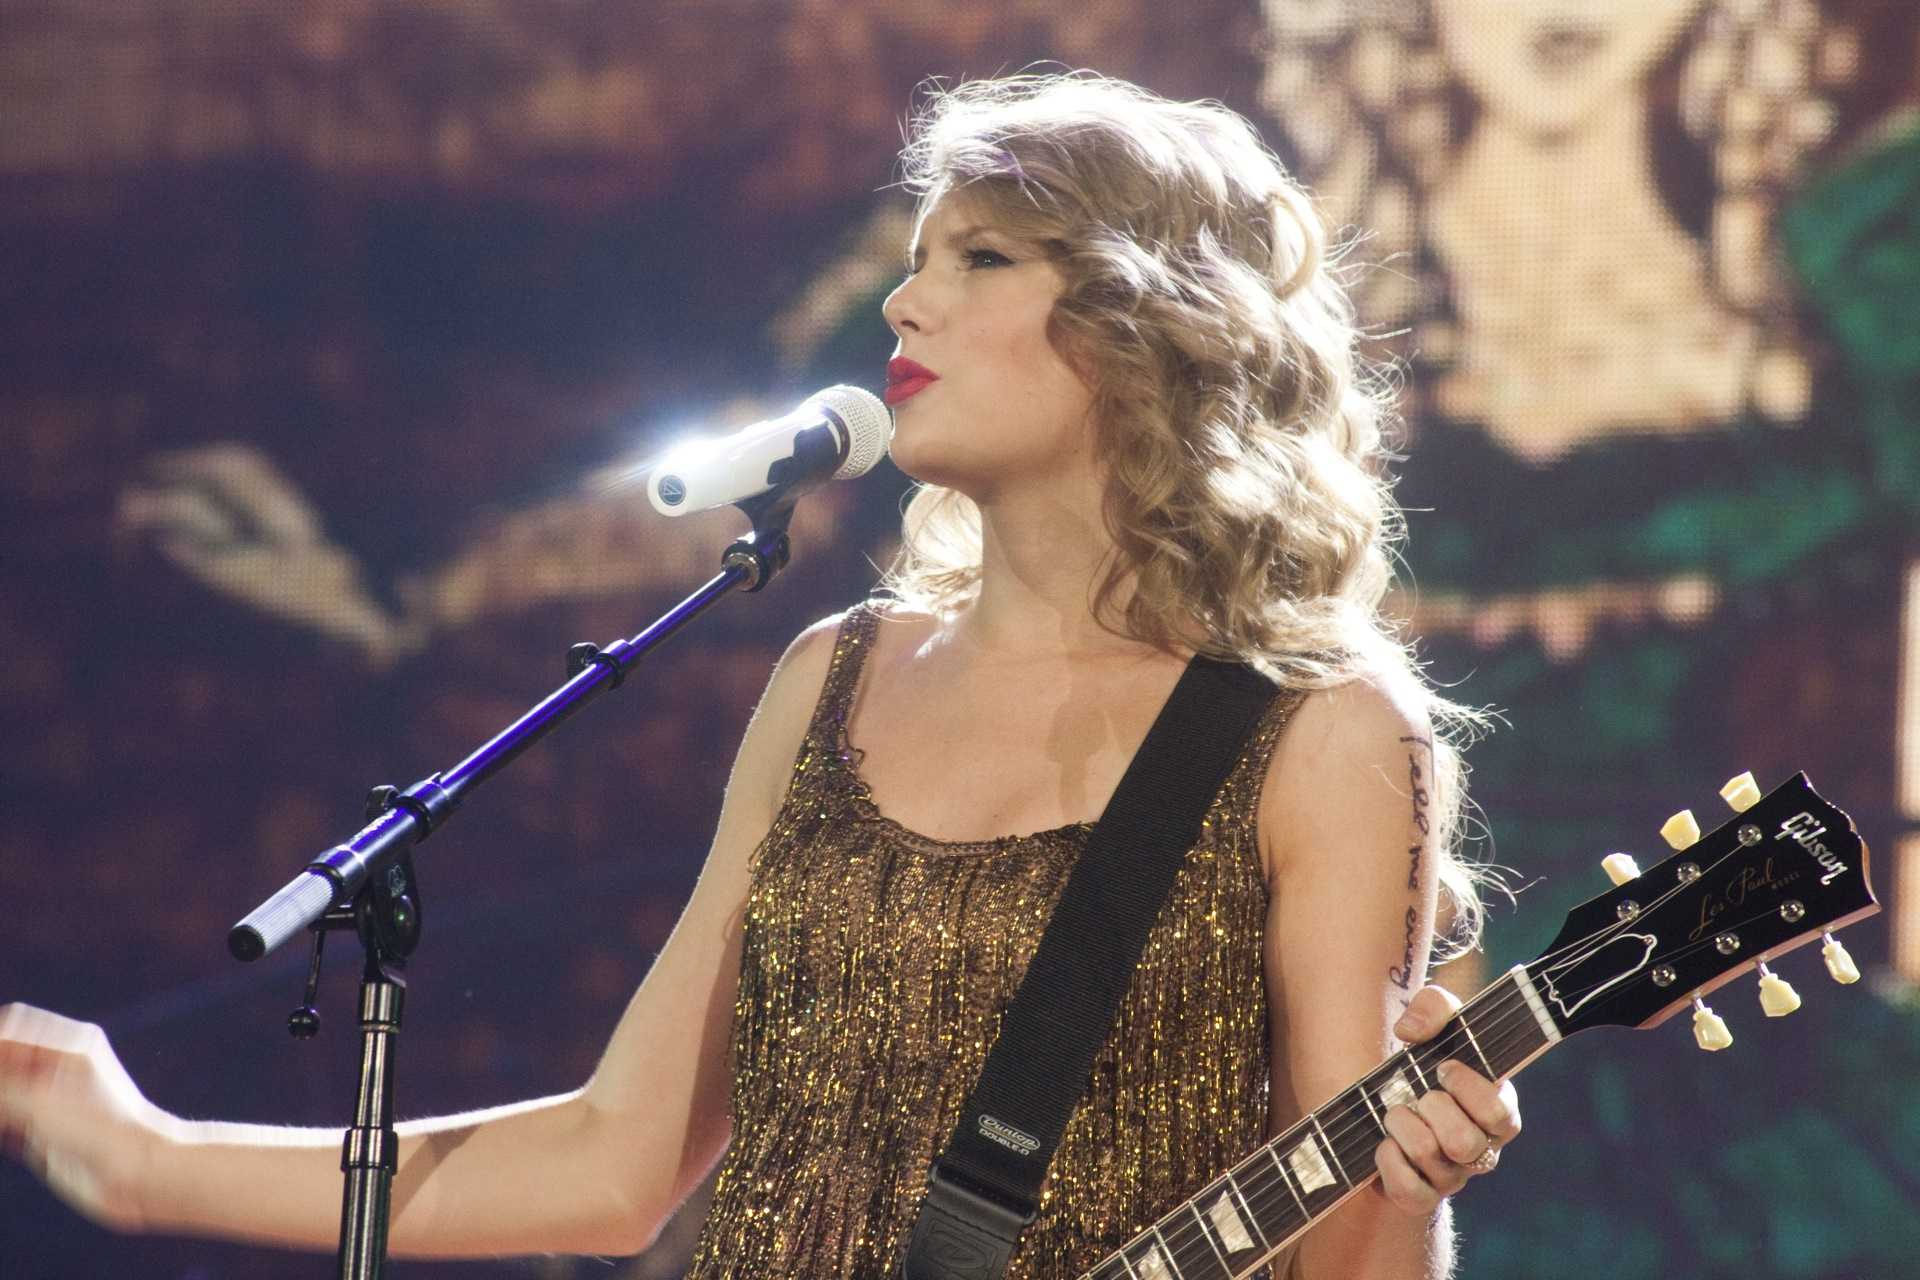 """Taylor Swift entertaining her fans on her """"Speak Now"""" tour at the Power Balance Pavilion in Sacramento on Sept. 3, 2011. (Photo by Bryce Fraser)"""